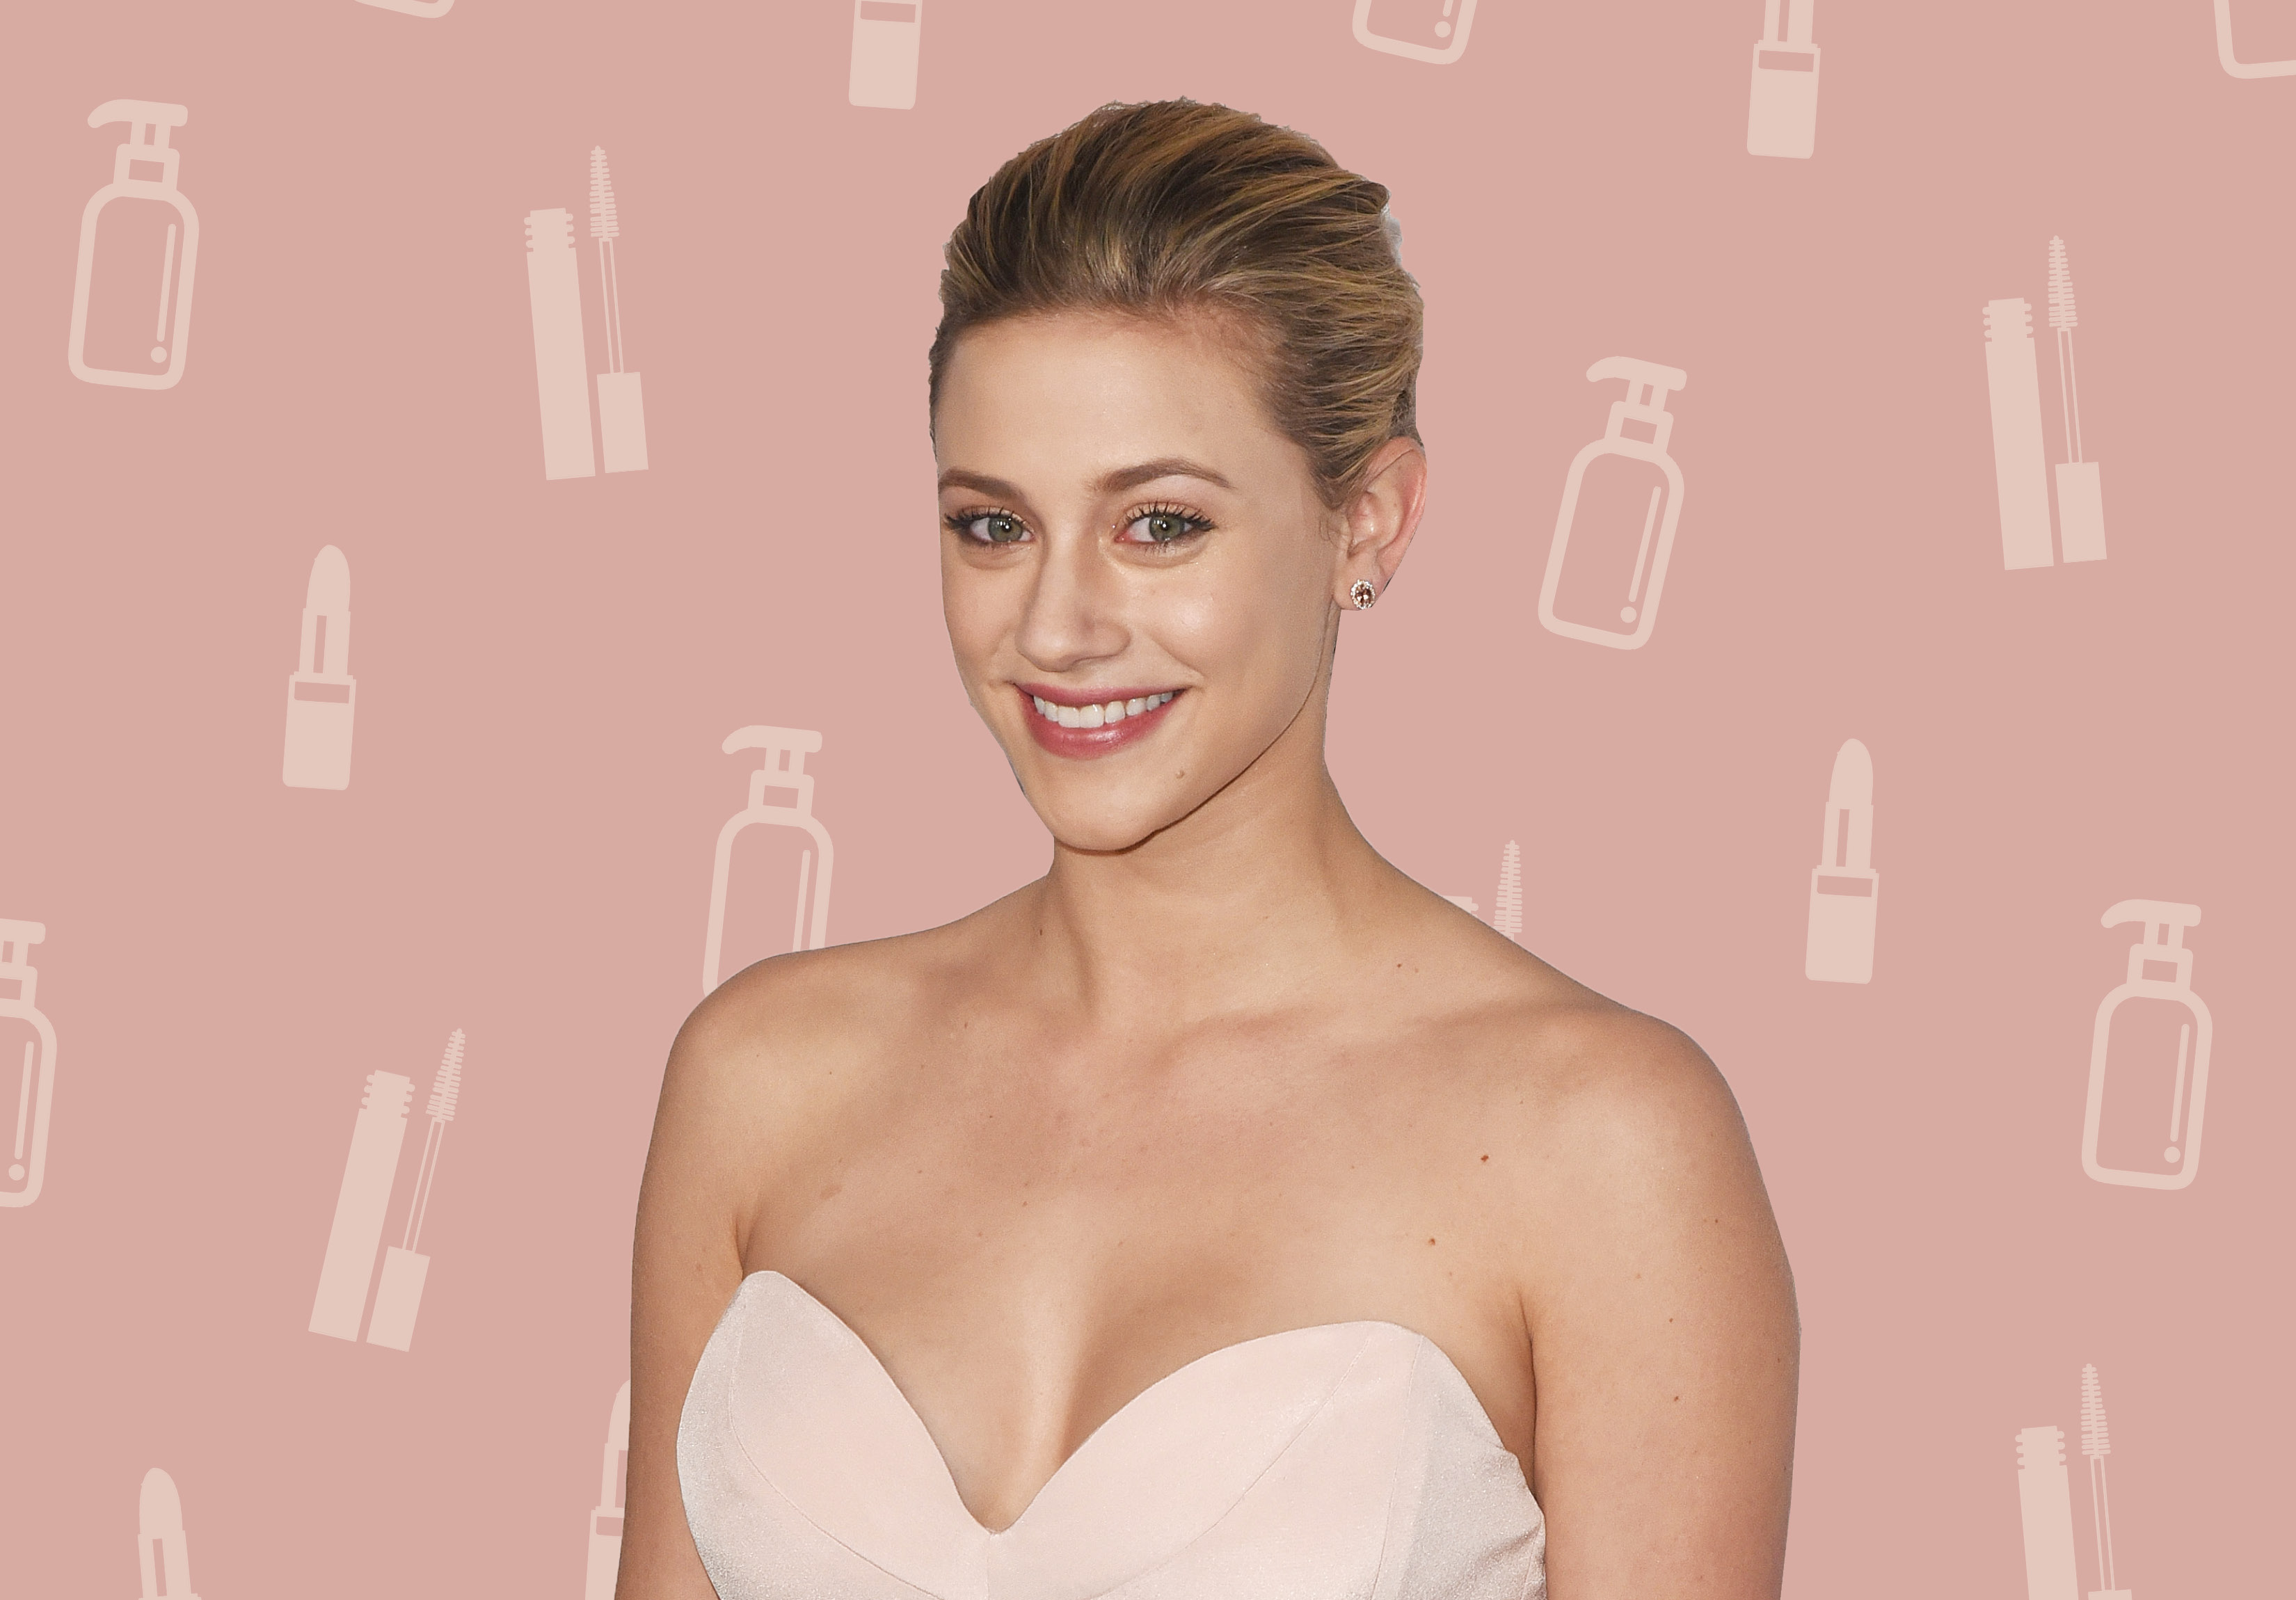 """Riverdale"" darling Lili Reinhart talks acne struggles and her secret life as a makeup artist"